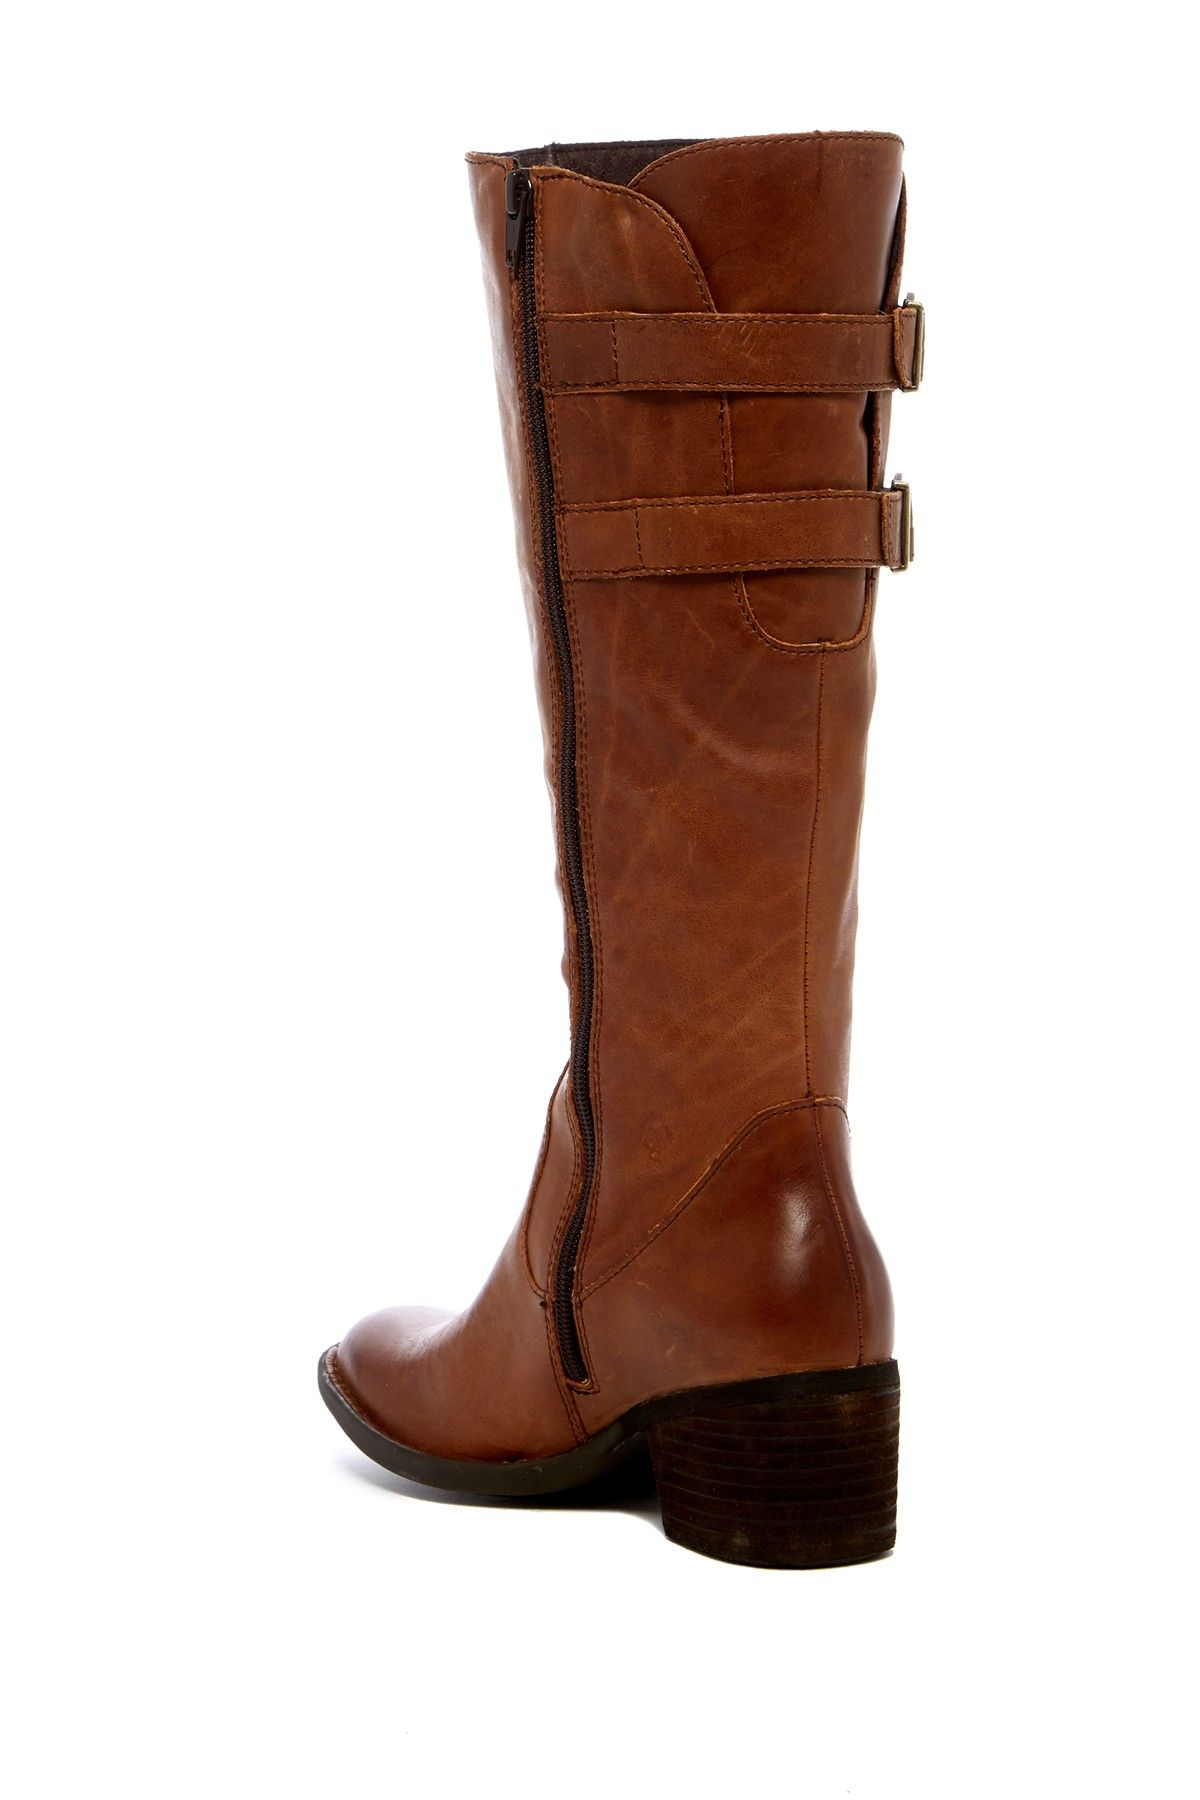 a543c677f95 Bley Boot by Born on  nordstrom rack